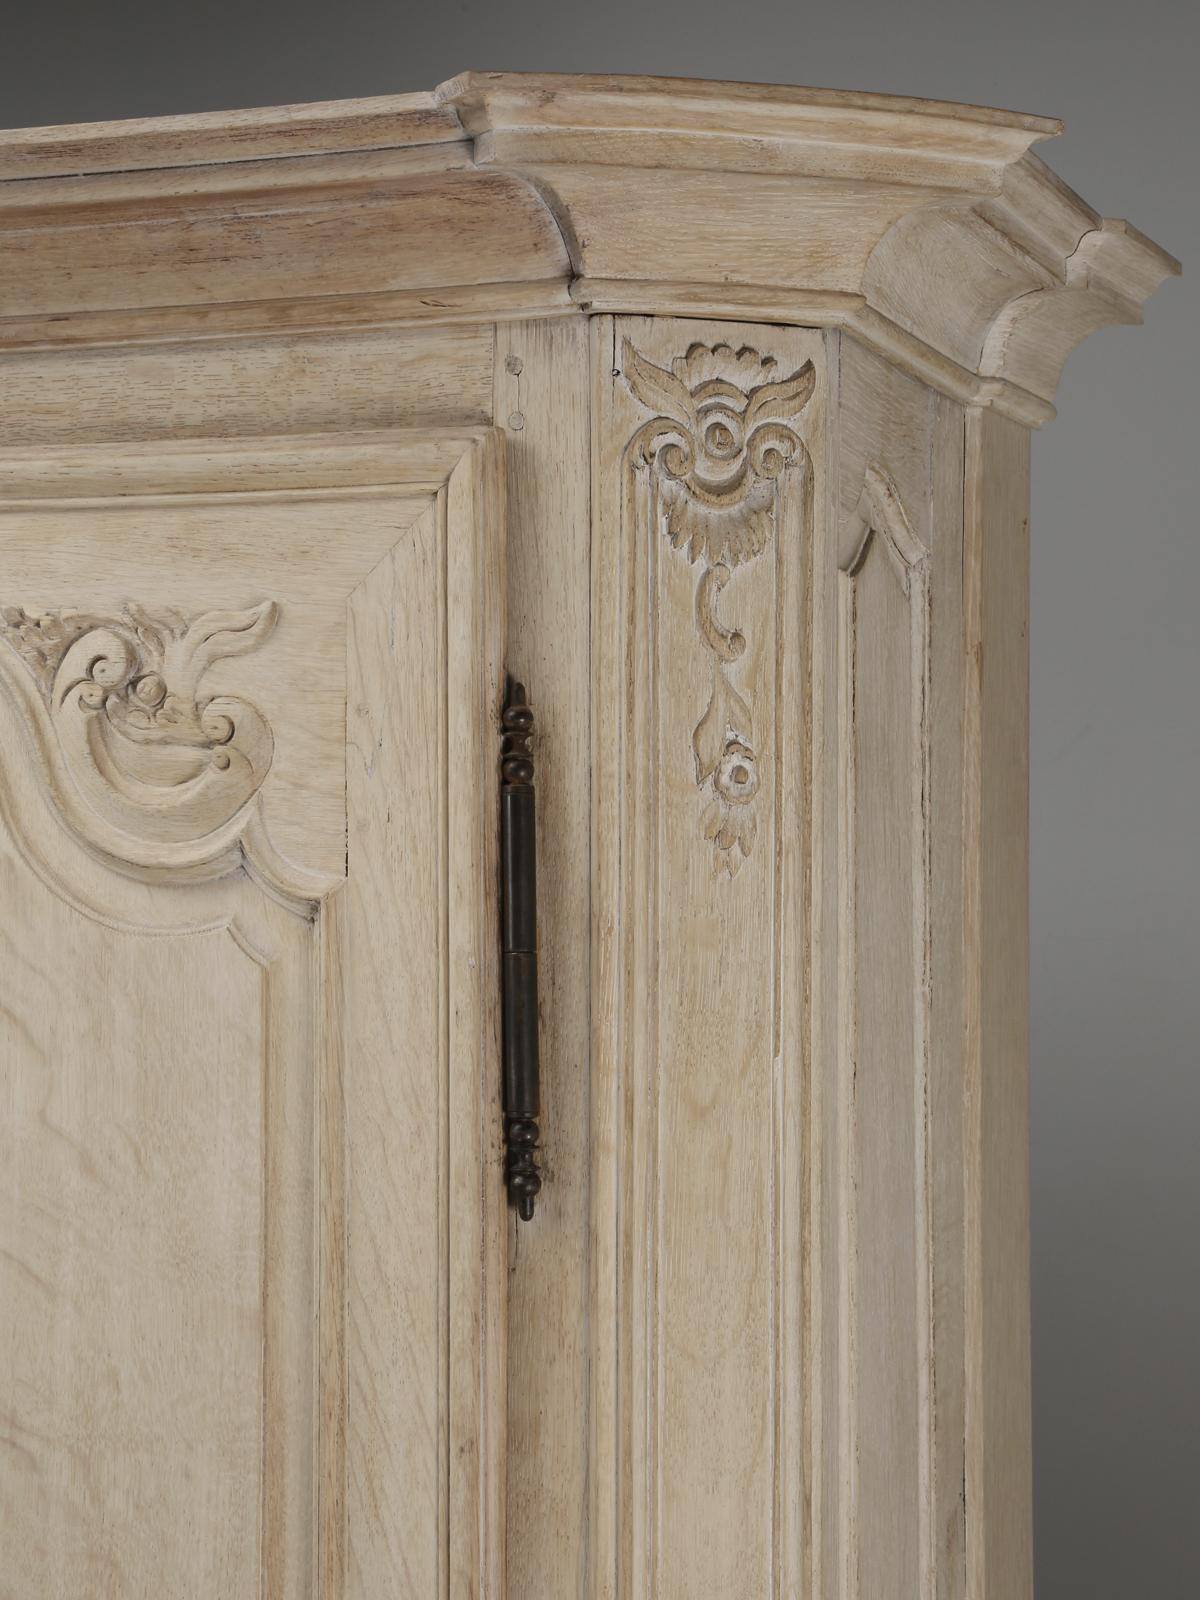 Antique French Bookcase Or Cabinet In Limed White Oak Restored